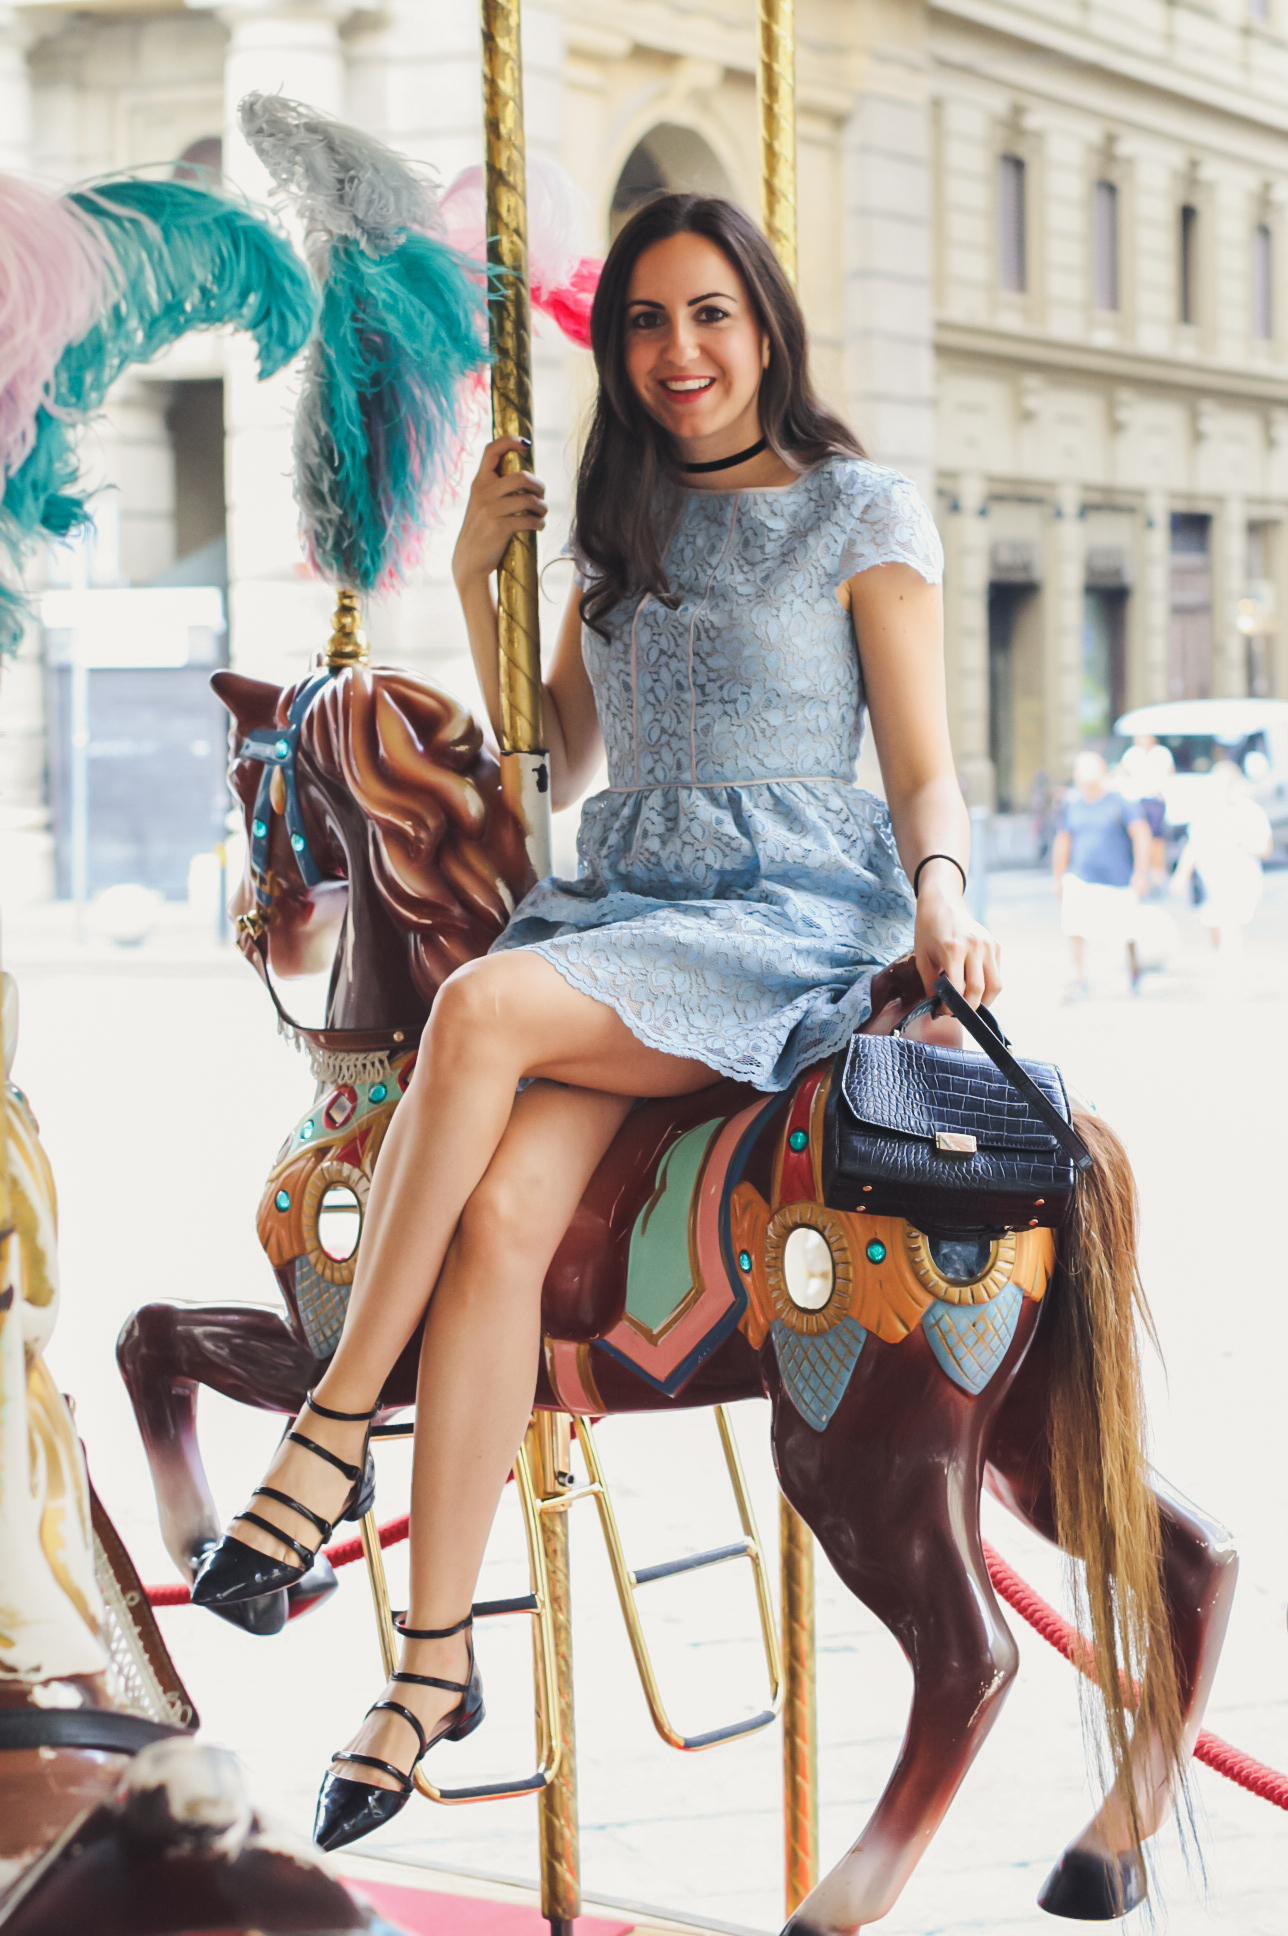 Yana Puaca of NoMad Luxuries wearing a blue lace dress from Banana Republic in Florence, Italy